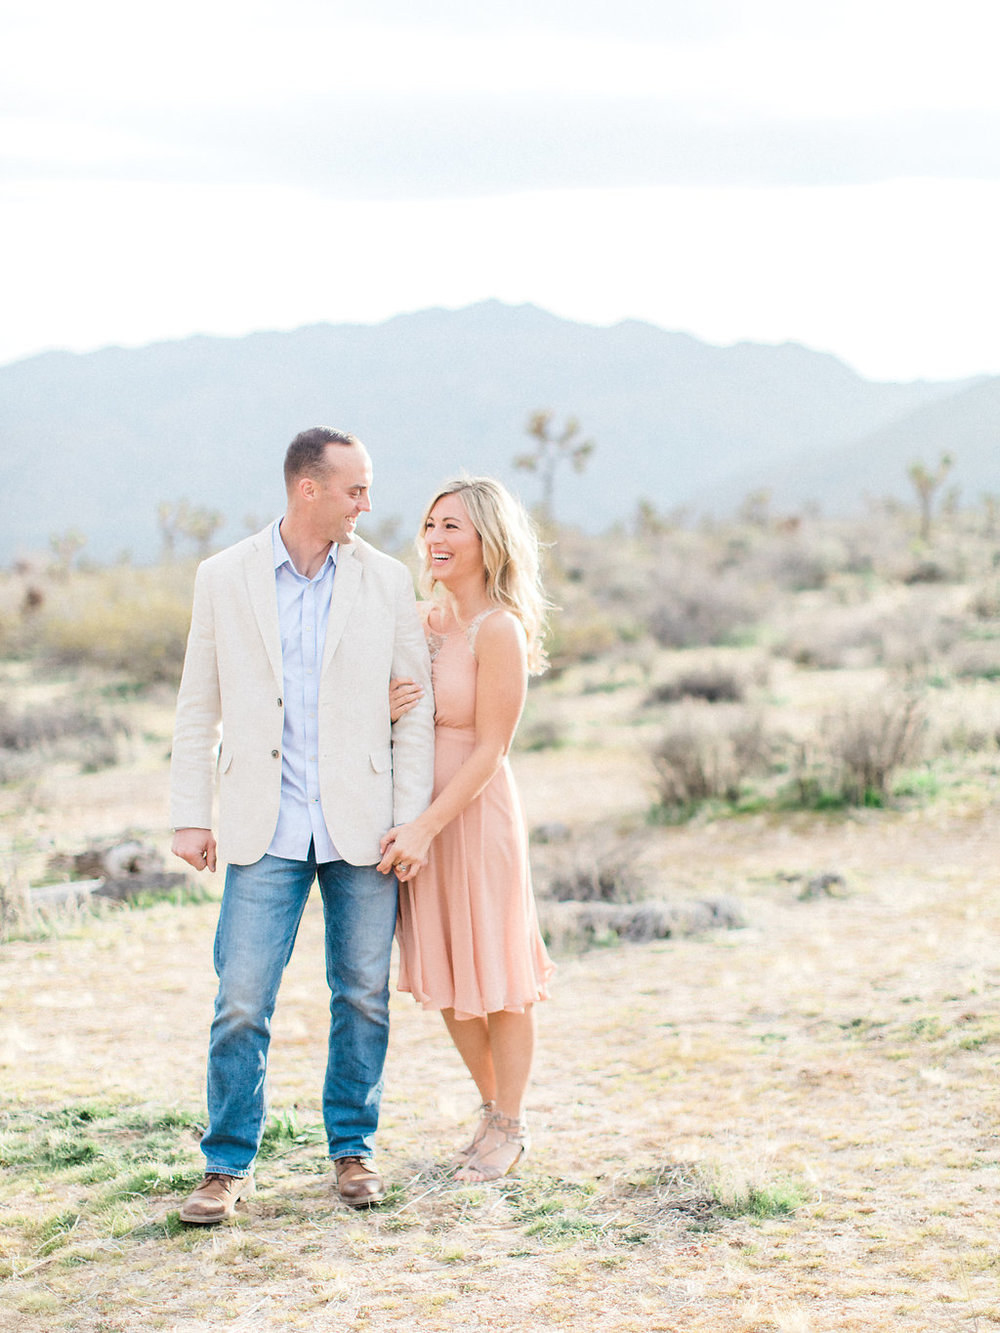 Joshua Tree Engagement Session | What to Wear for Pictures | Southern California Wedding Photographer | Mastin Labs Fuji Film | Fine Art Photographer | Desert Shoot | Natural Session in the Desert.jpg